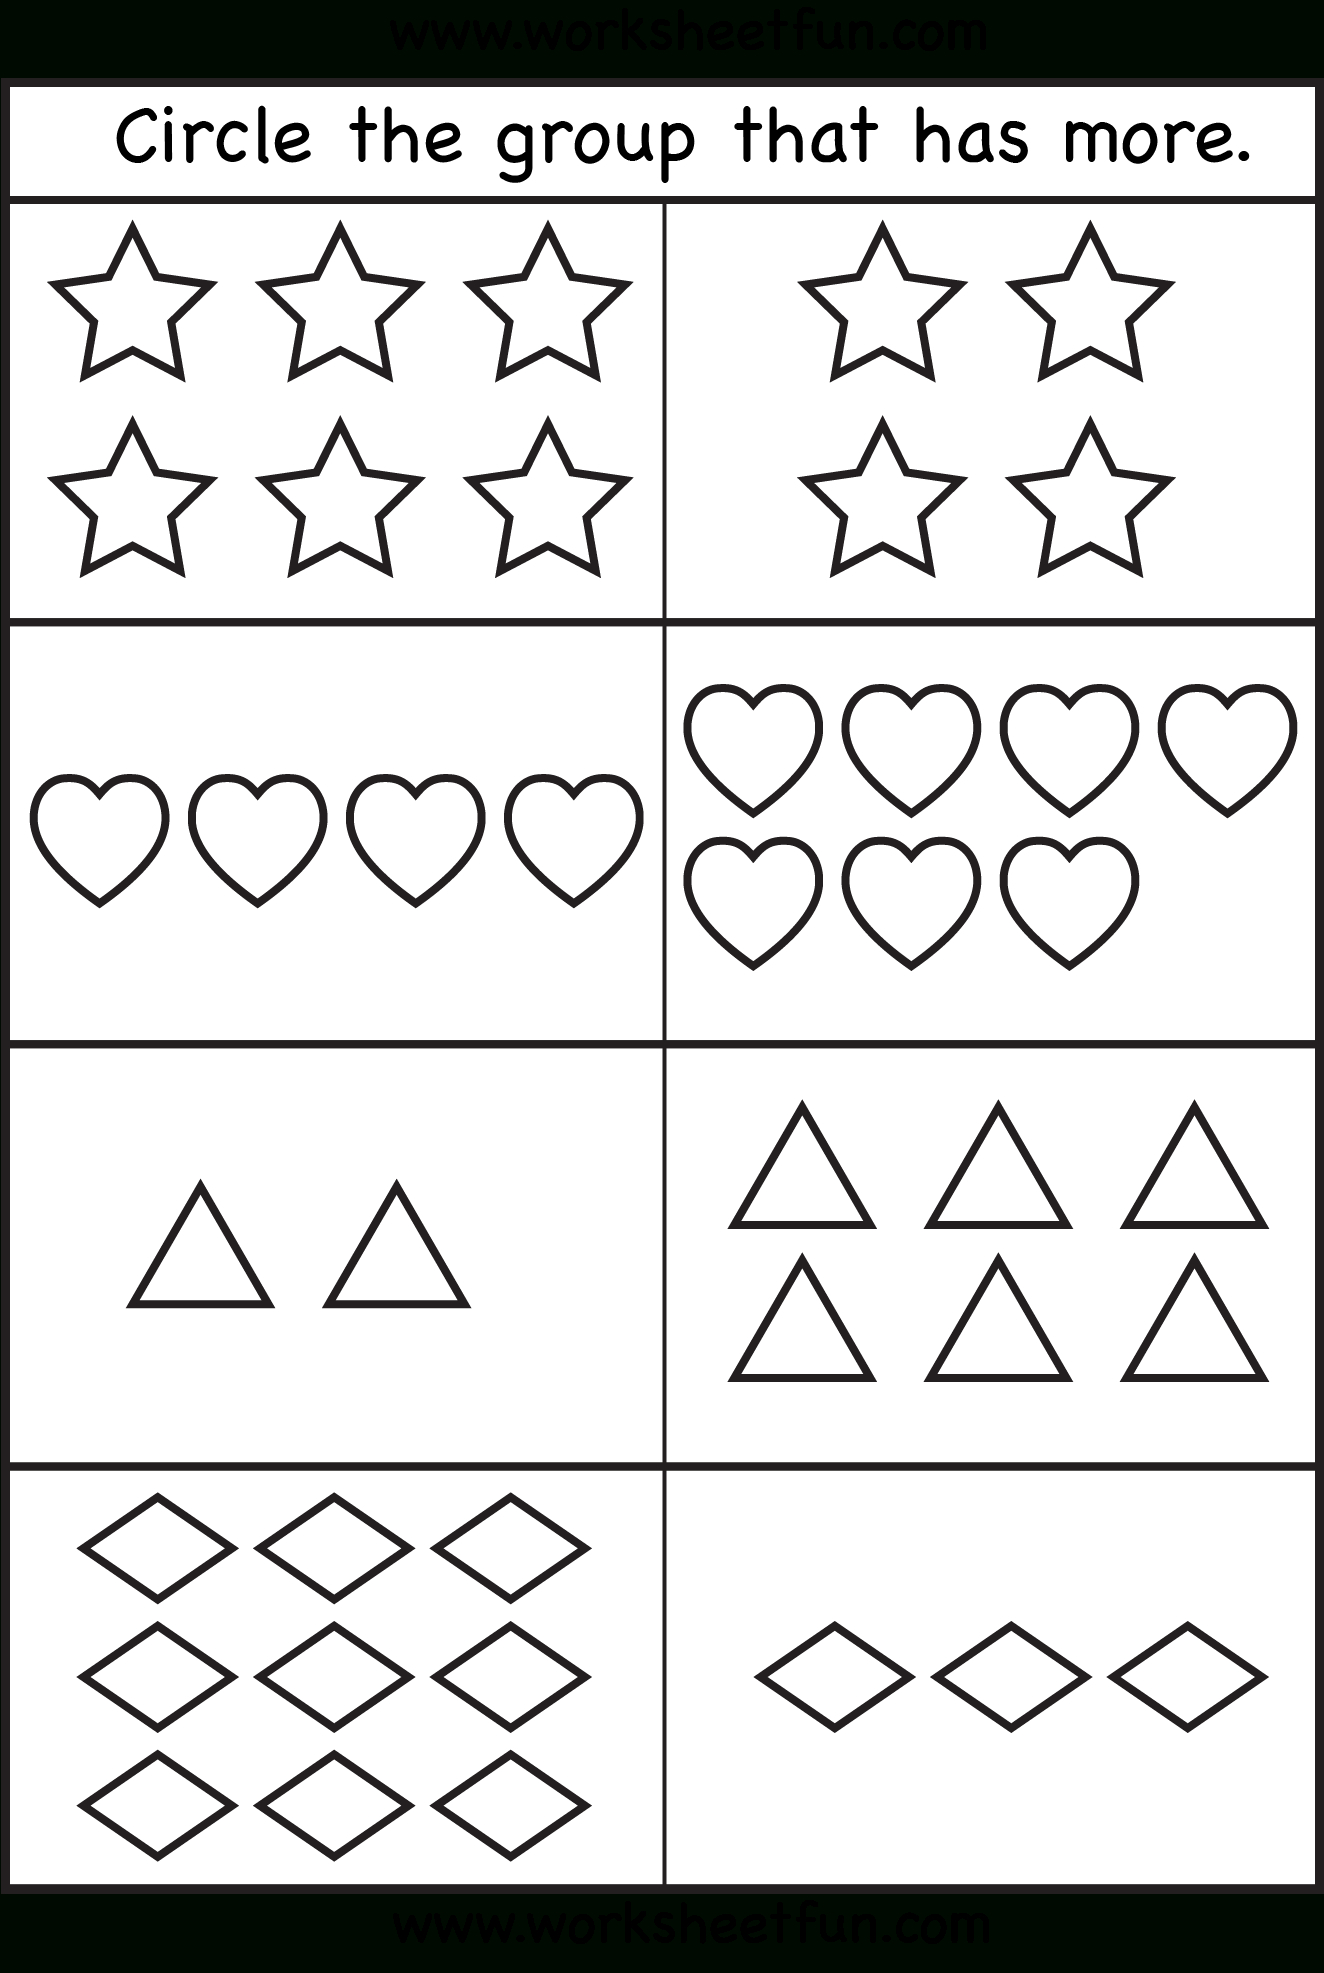 Circle The Group That Has More. | Printable Worksheets - Free Printable Same And Different Worksheets